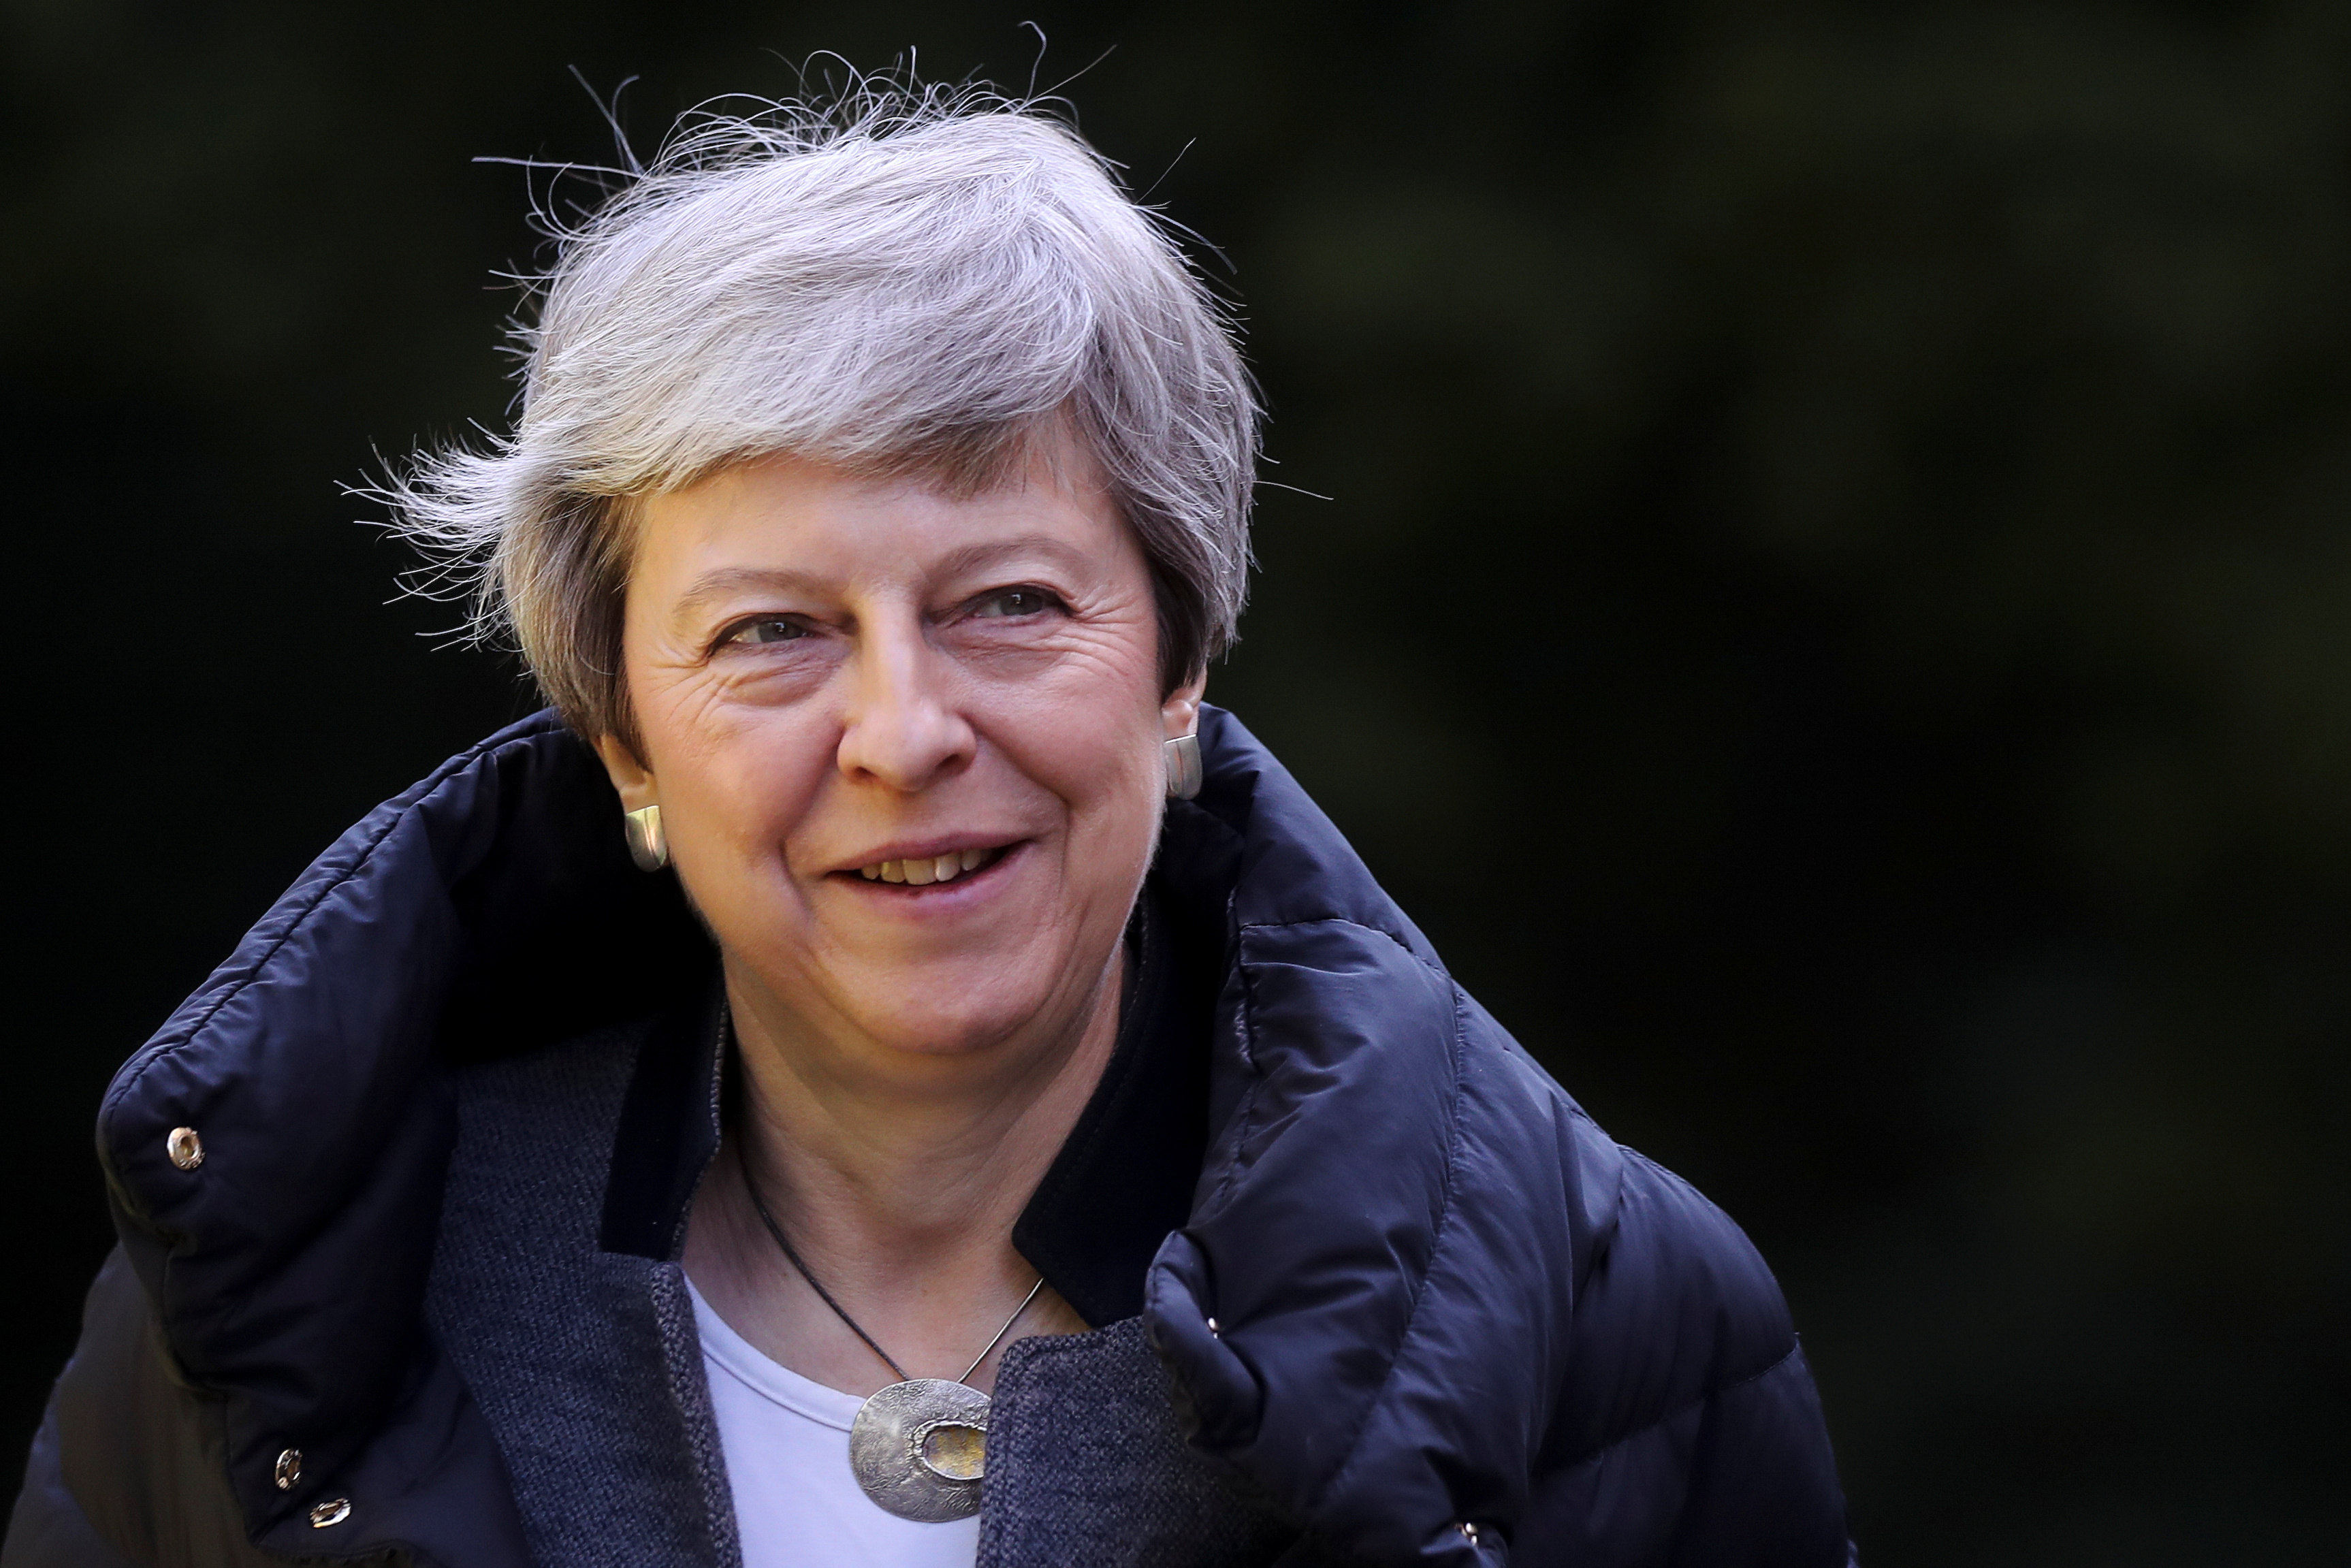 Britain's Prime Minister Theresa May leaves church, as Brexit turmoil continues, in Sonning, Britain, May 12, 2019.